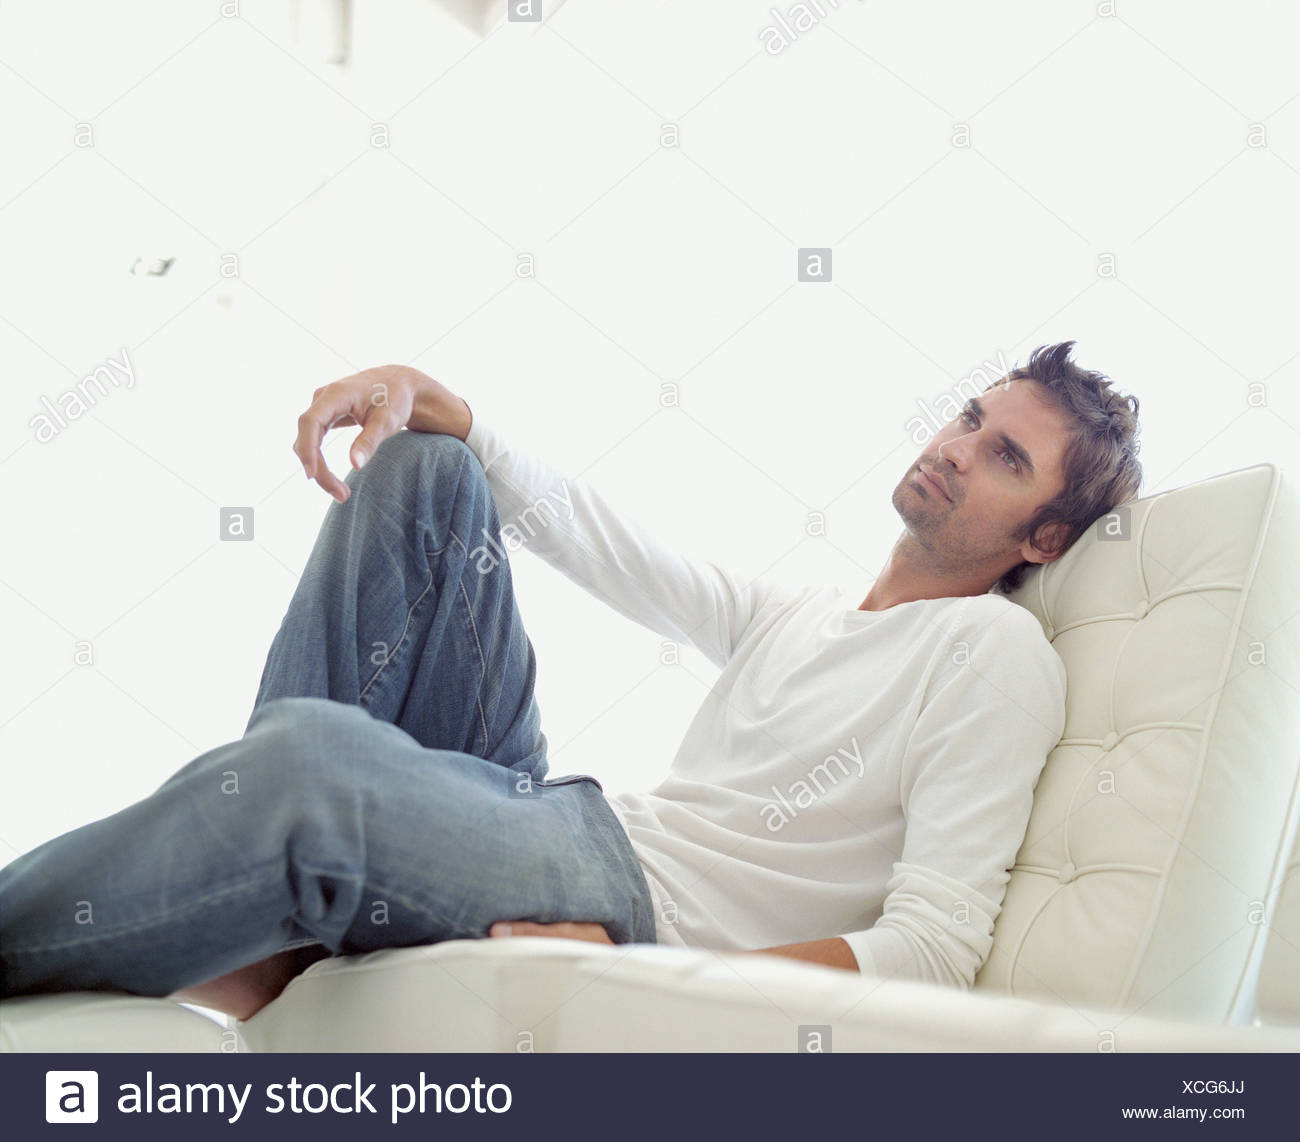 A man relaxing in a comfy seat - Stock Image